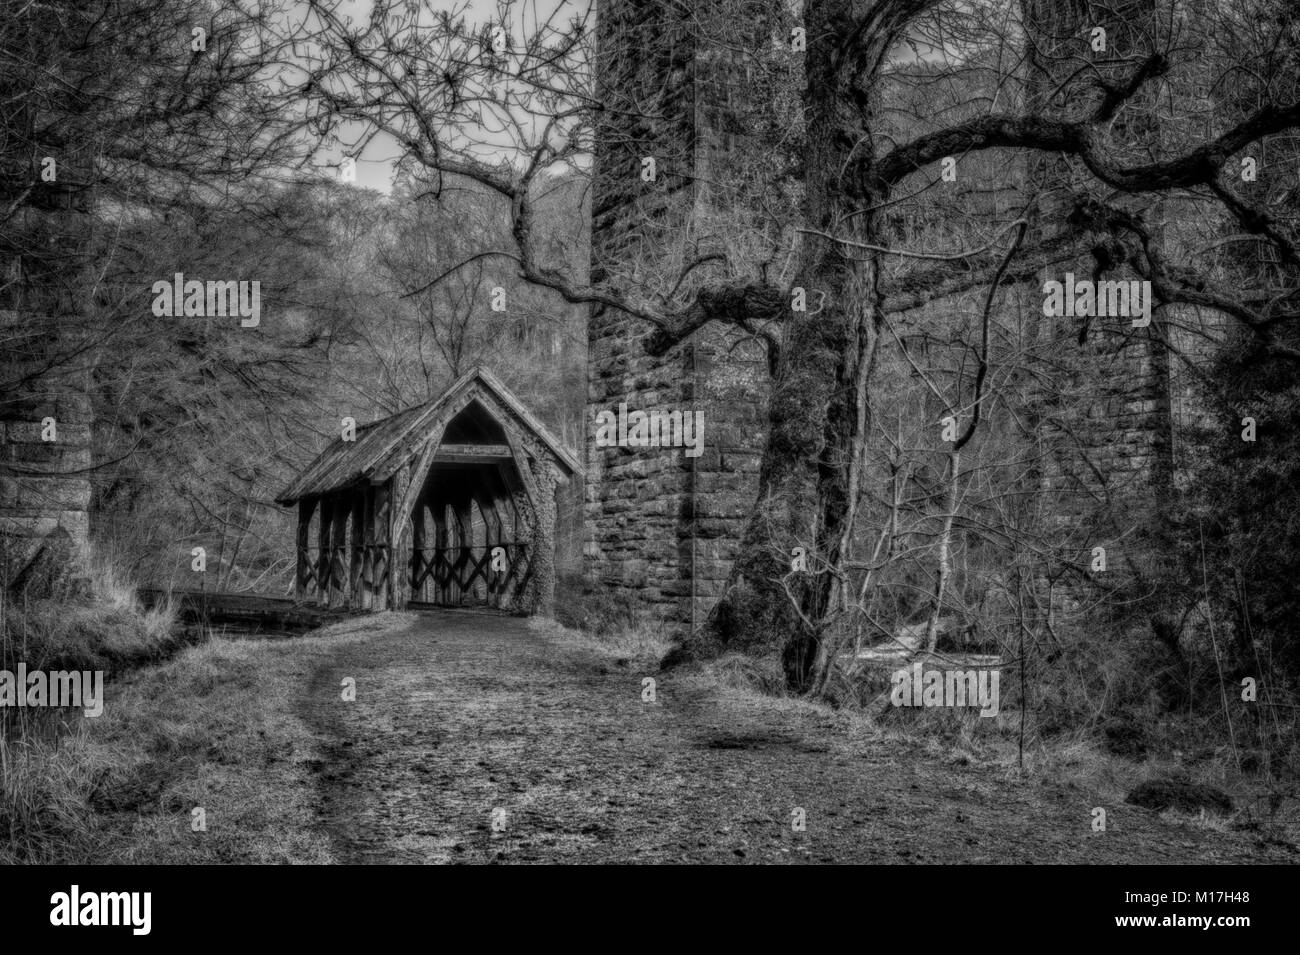 This rustic little shelter sits immediately below one of the arches of the Camps Viaduct in Almondell Country Park, Stock Photo